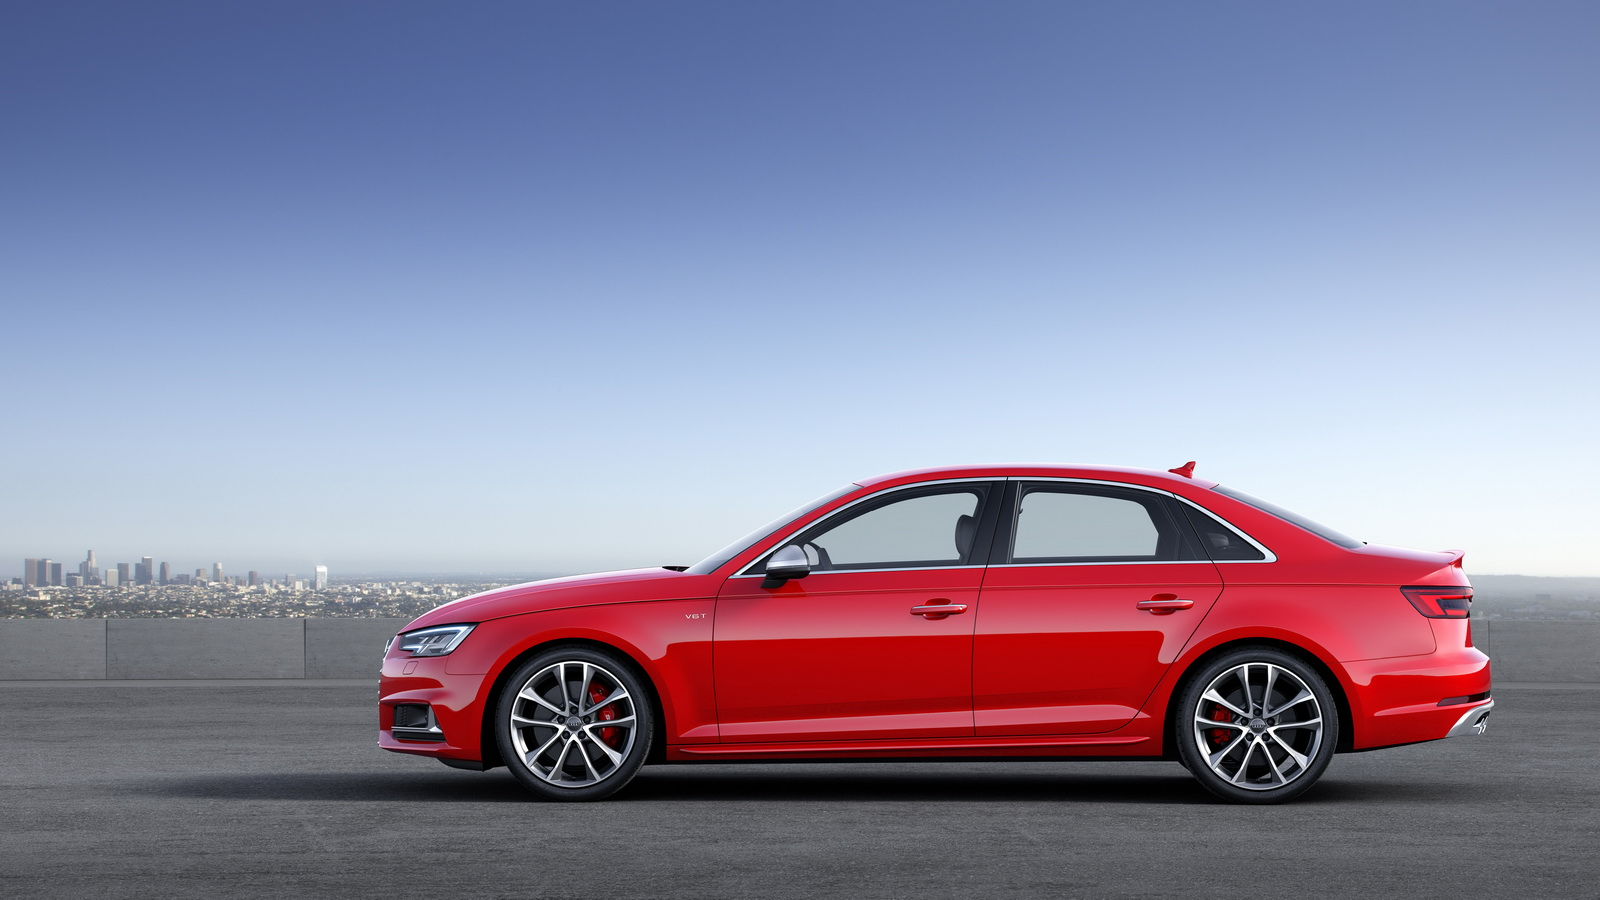 Audi S4 Reviews  Audi S4 Price Photos and Specs  Car